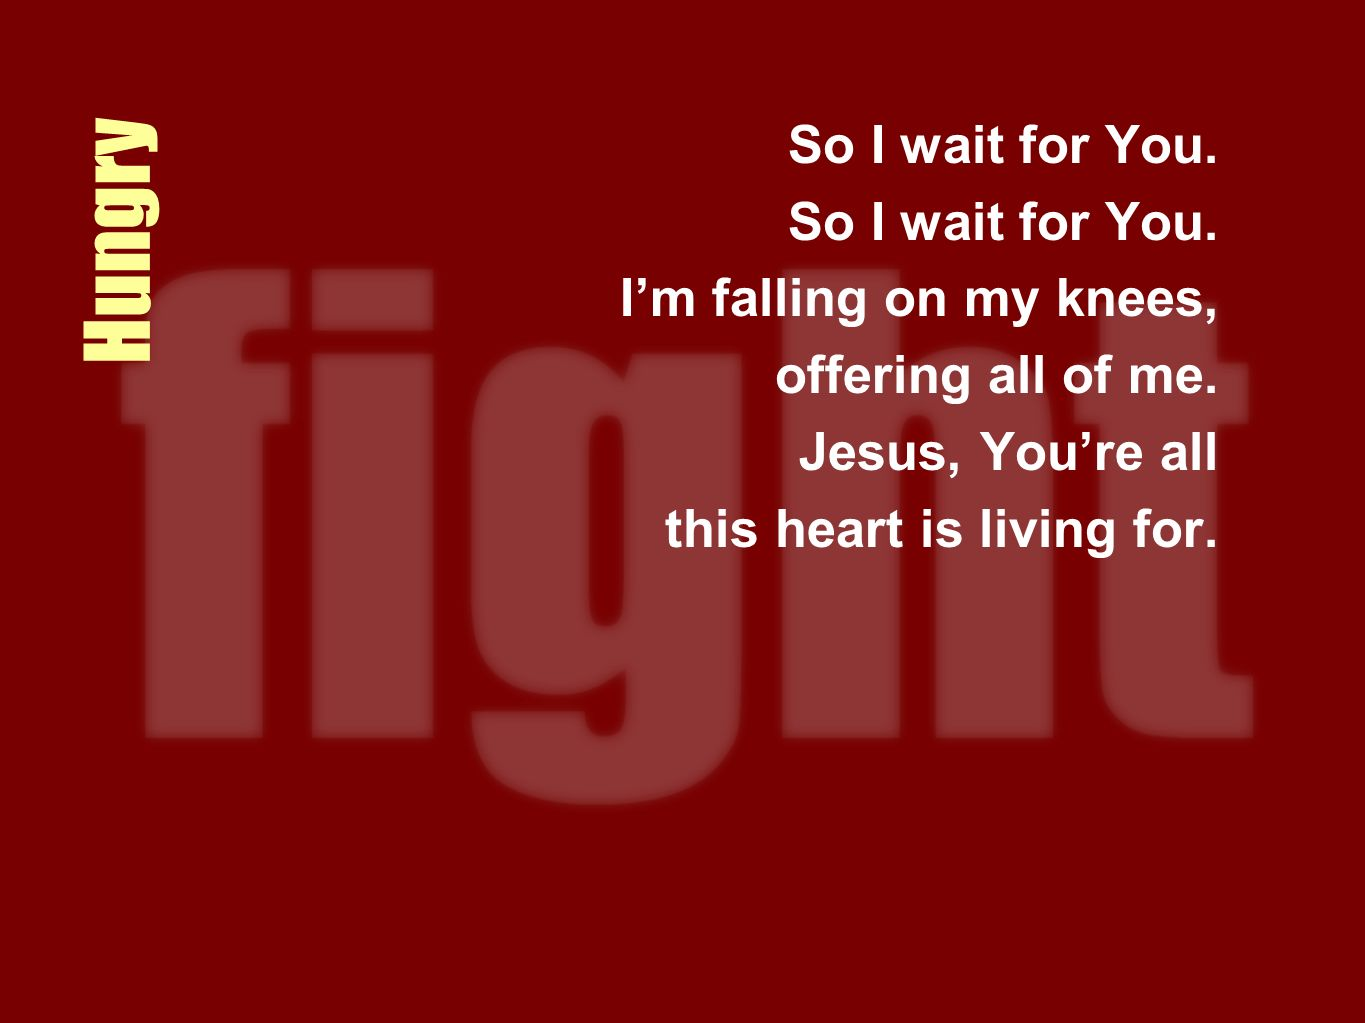 Hungry So I wait for You. Im falling on my knees, offering all of me. Jesus, Youre all this heart is living for.